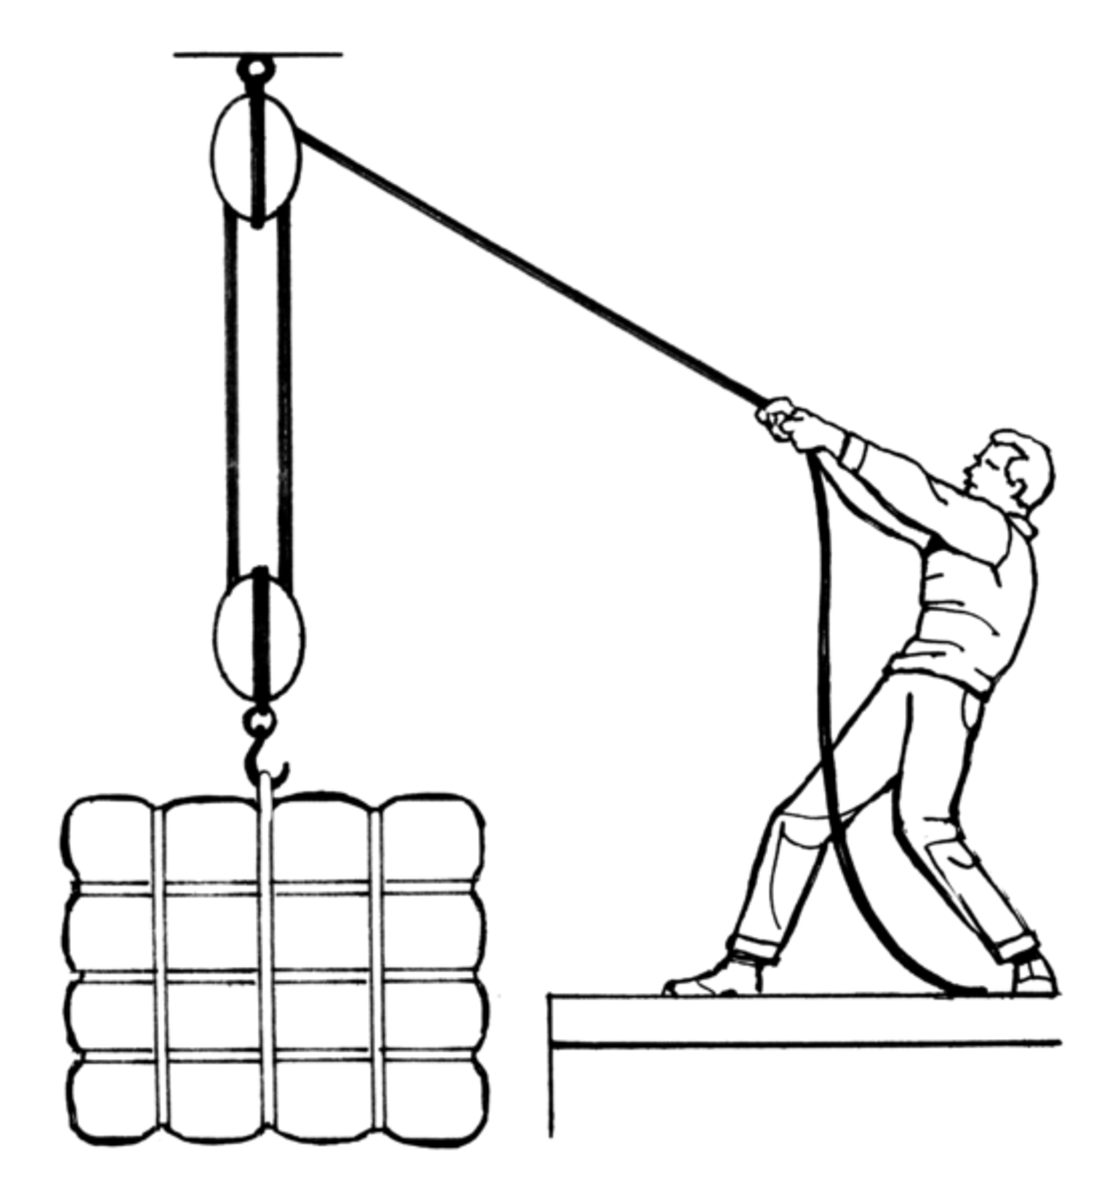 A pulley is a type of simple machine many kids may be familiar with